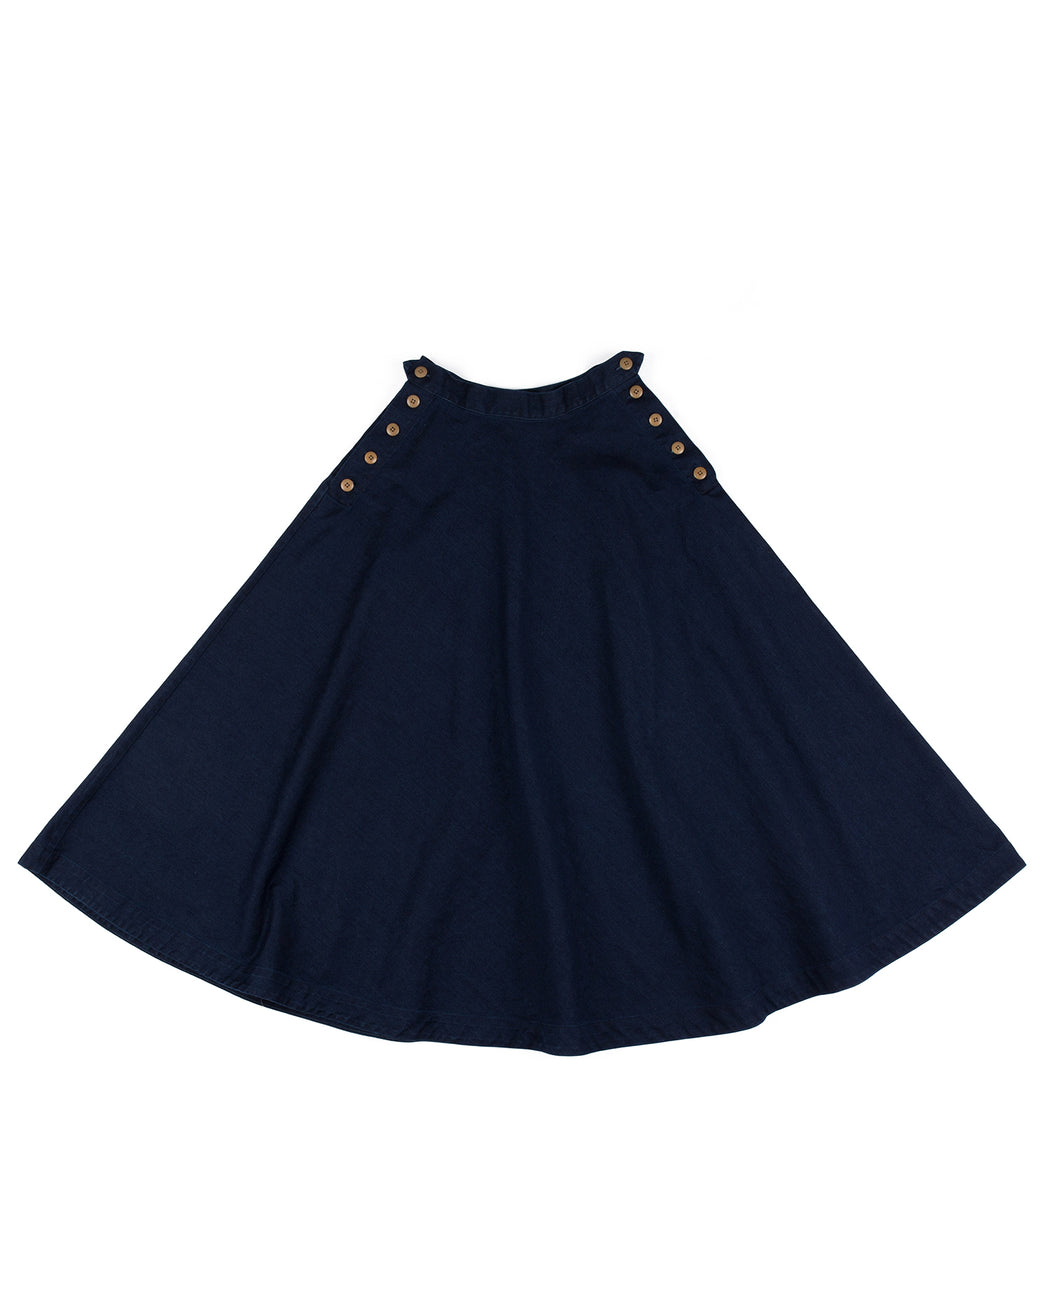 Ilana Kohn:Lindy Skirt – 11oz Denim,ANOMIE